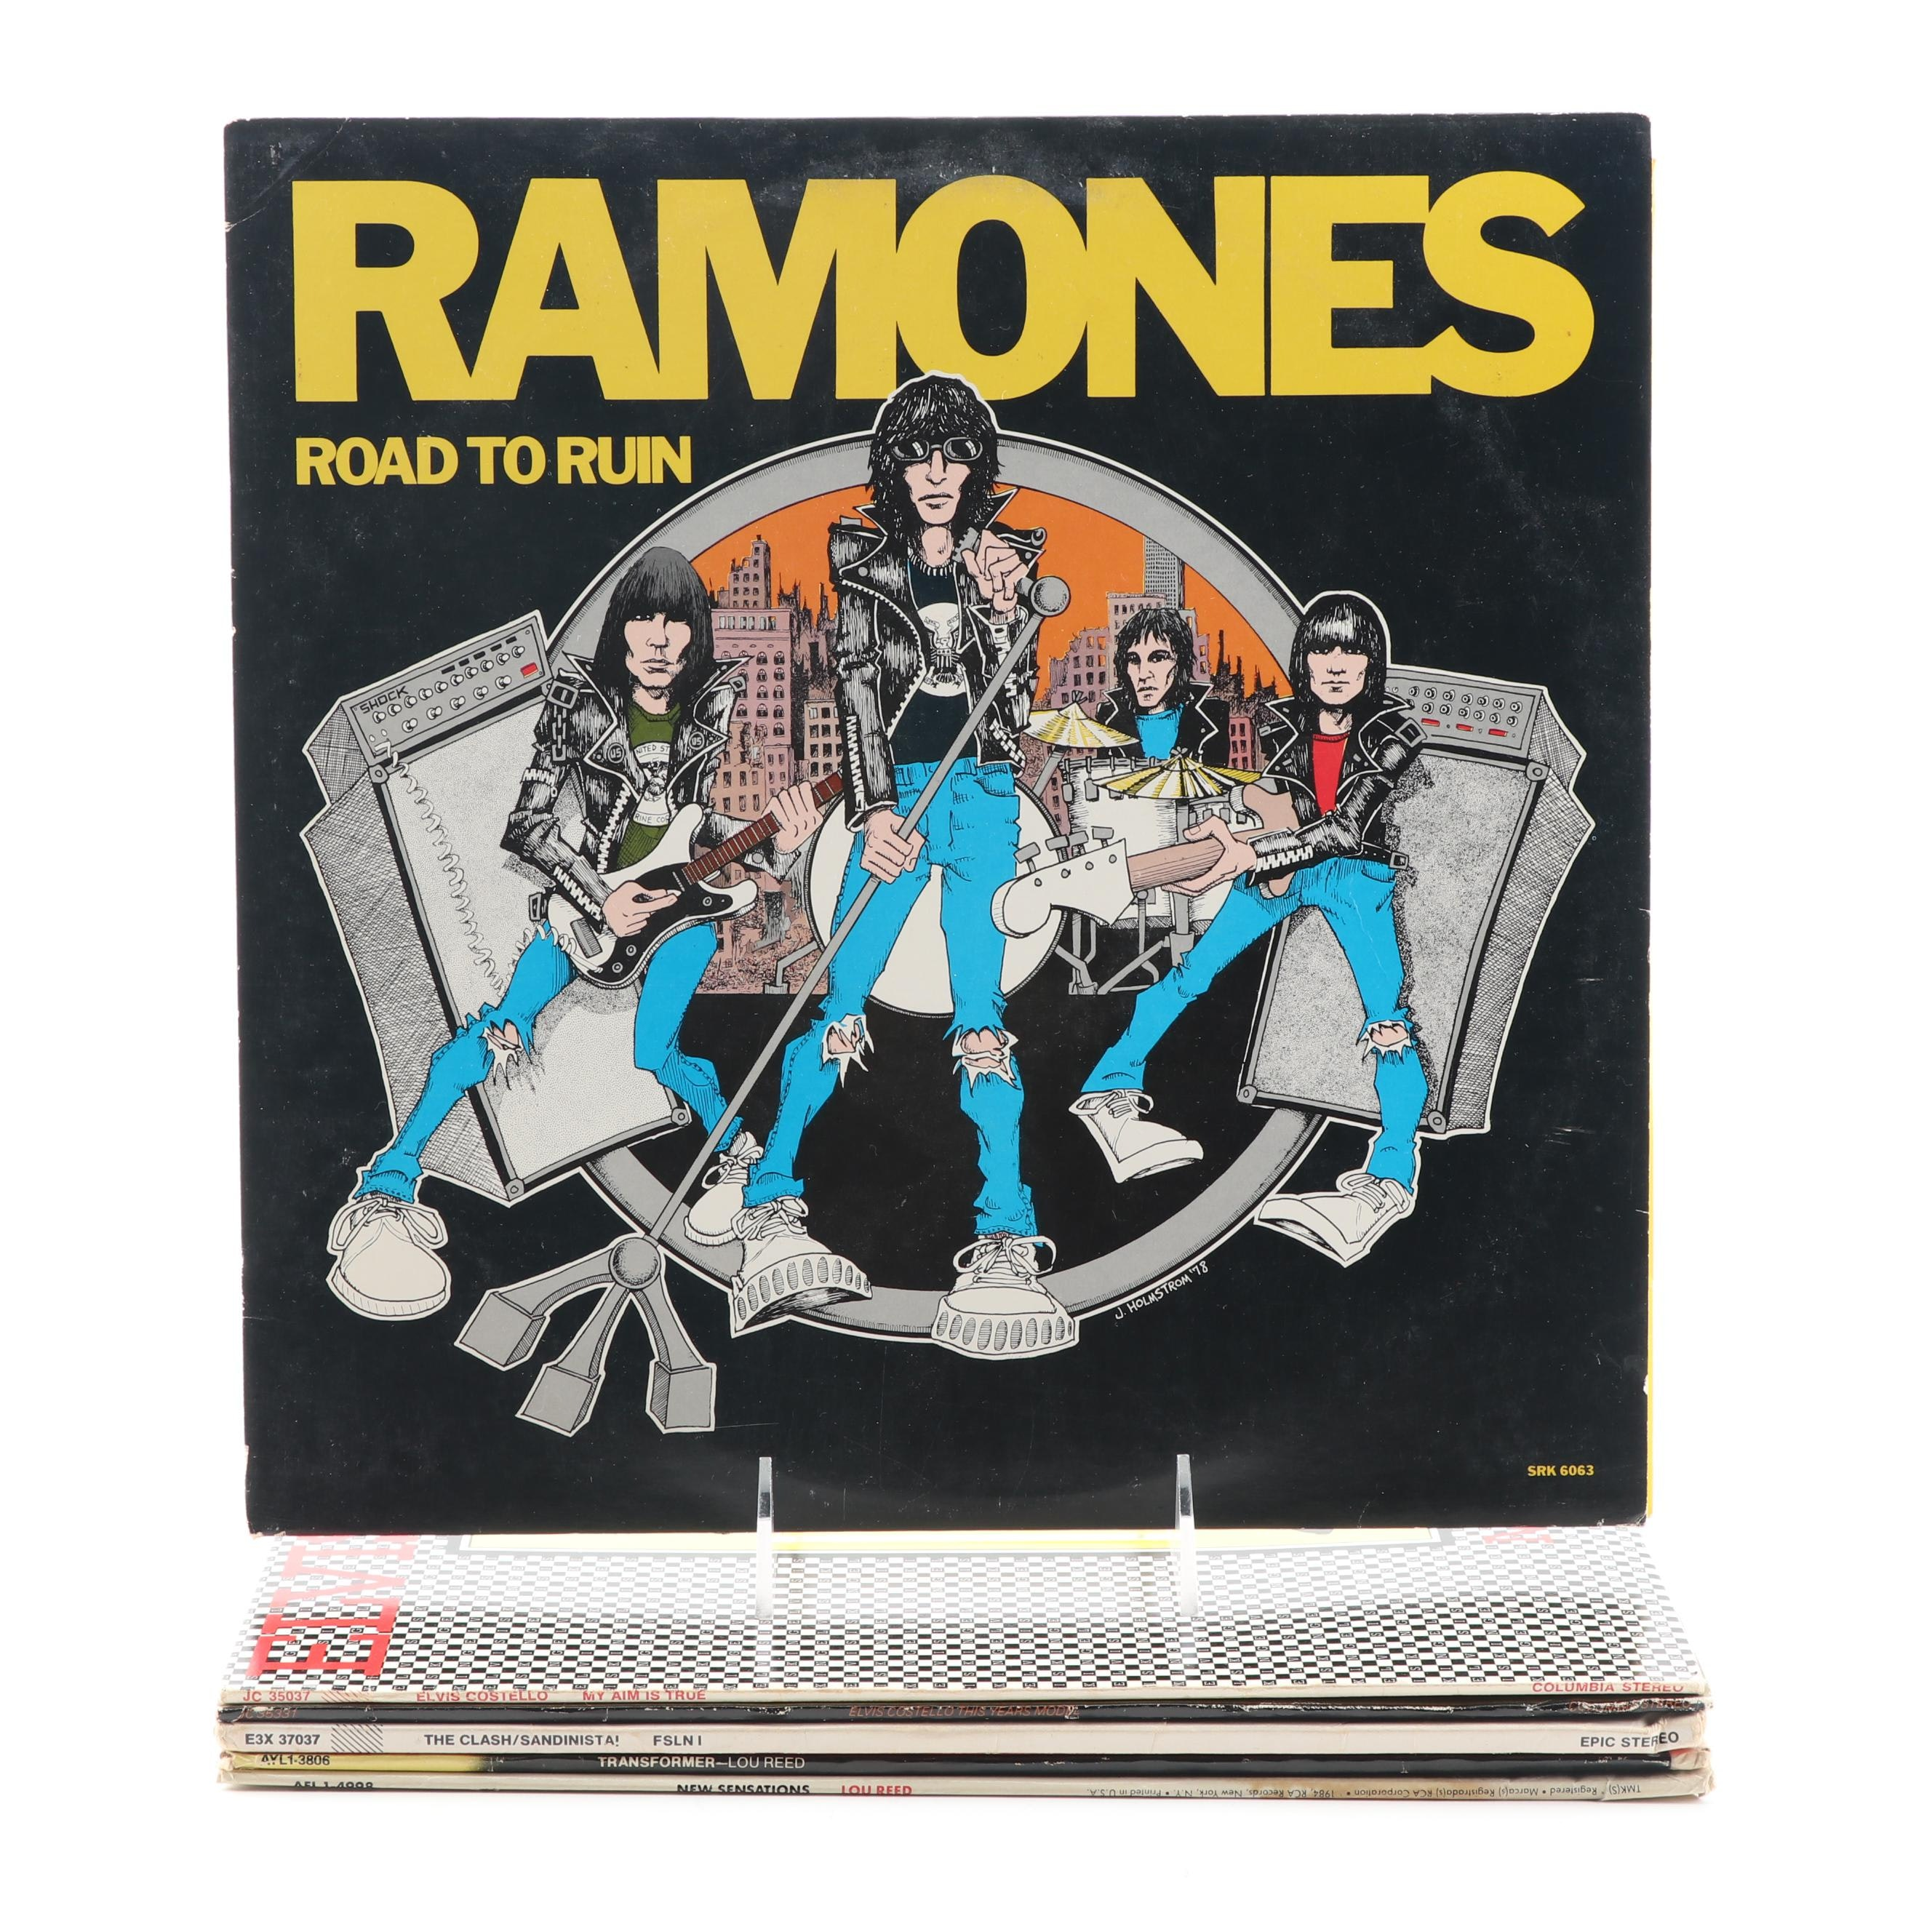 Ramones, Elvis Costello, Clash, and Lou Reed Records